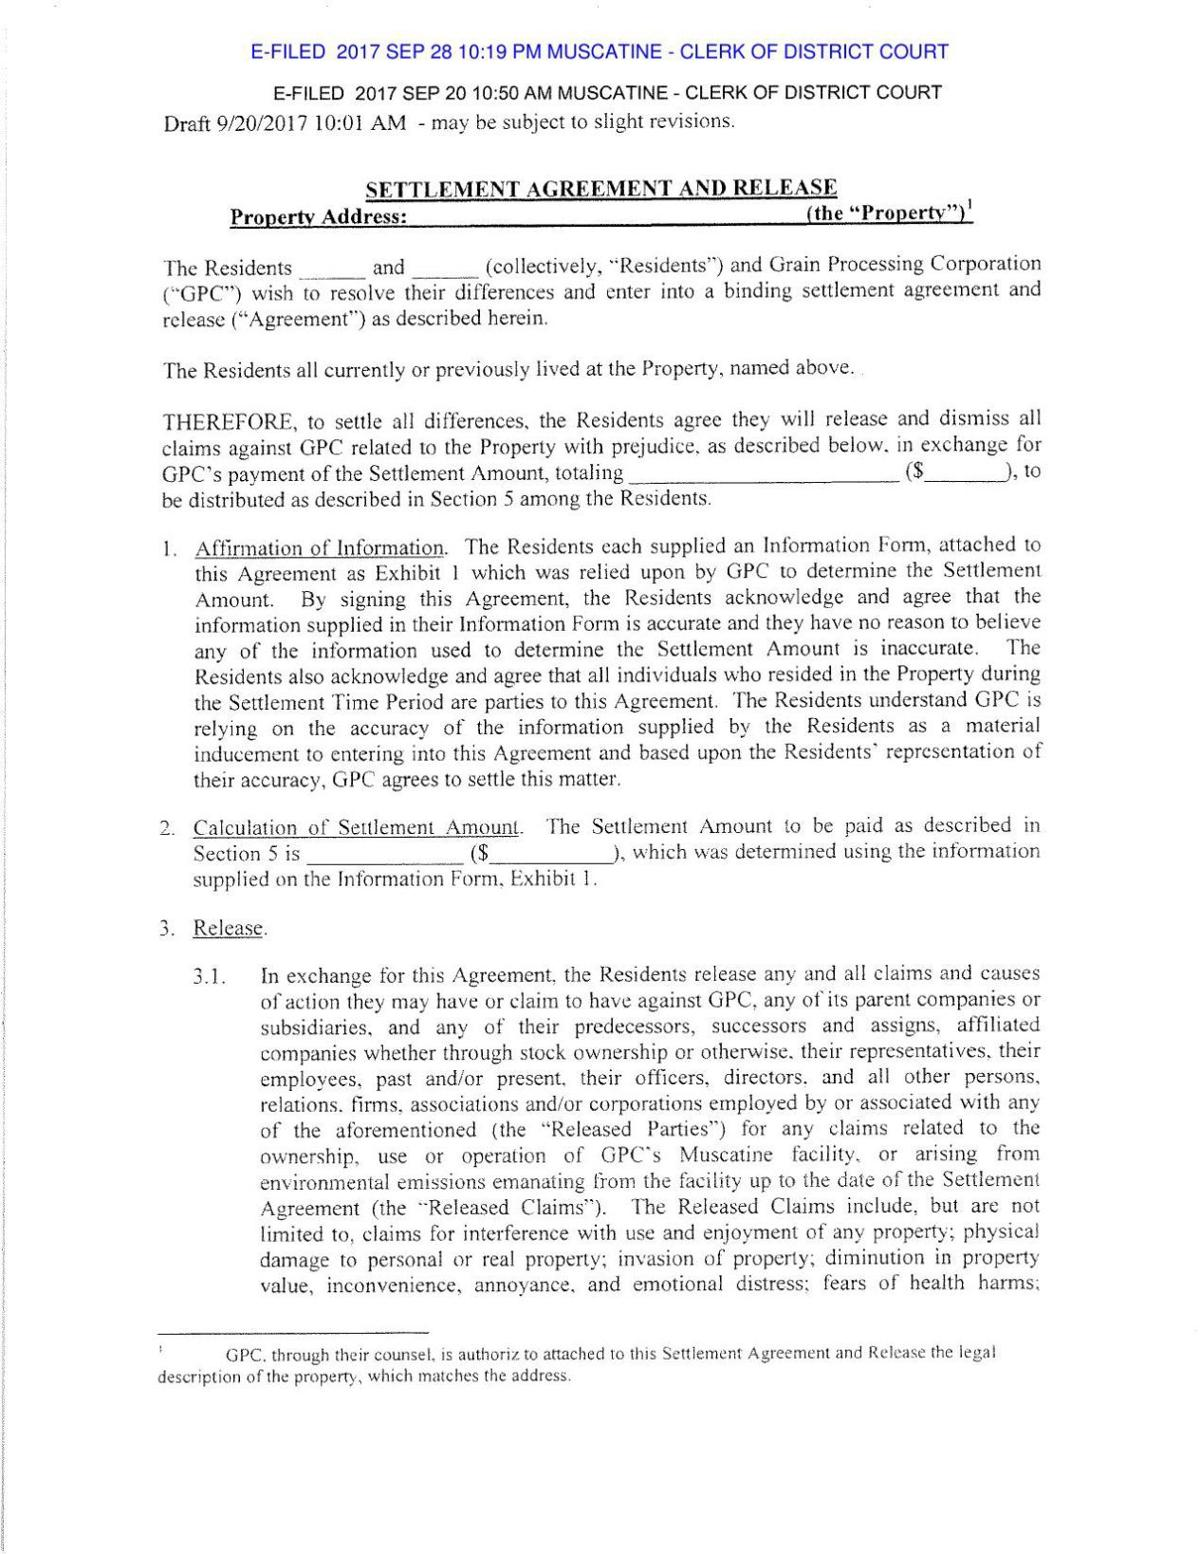 settlement agreement and release